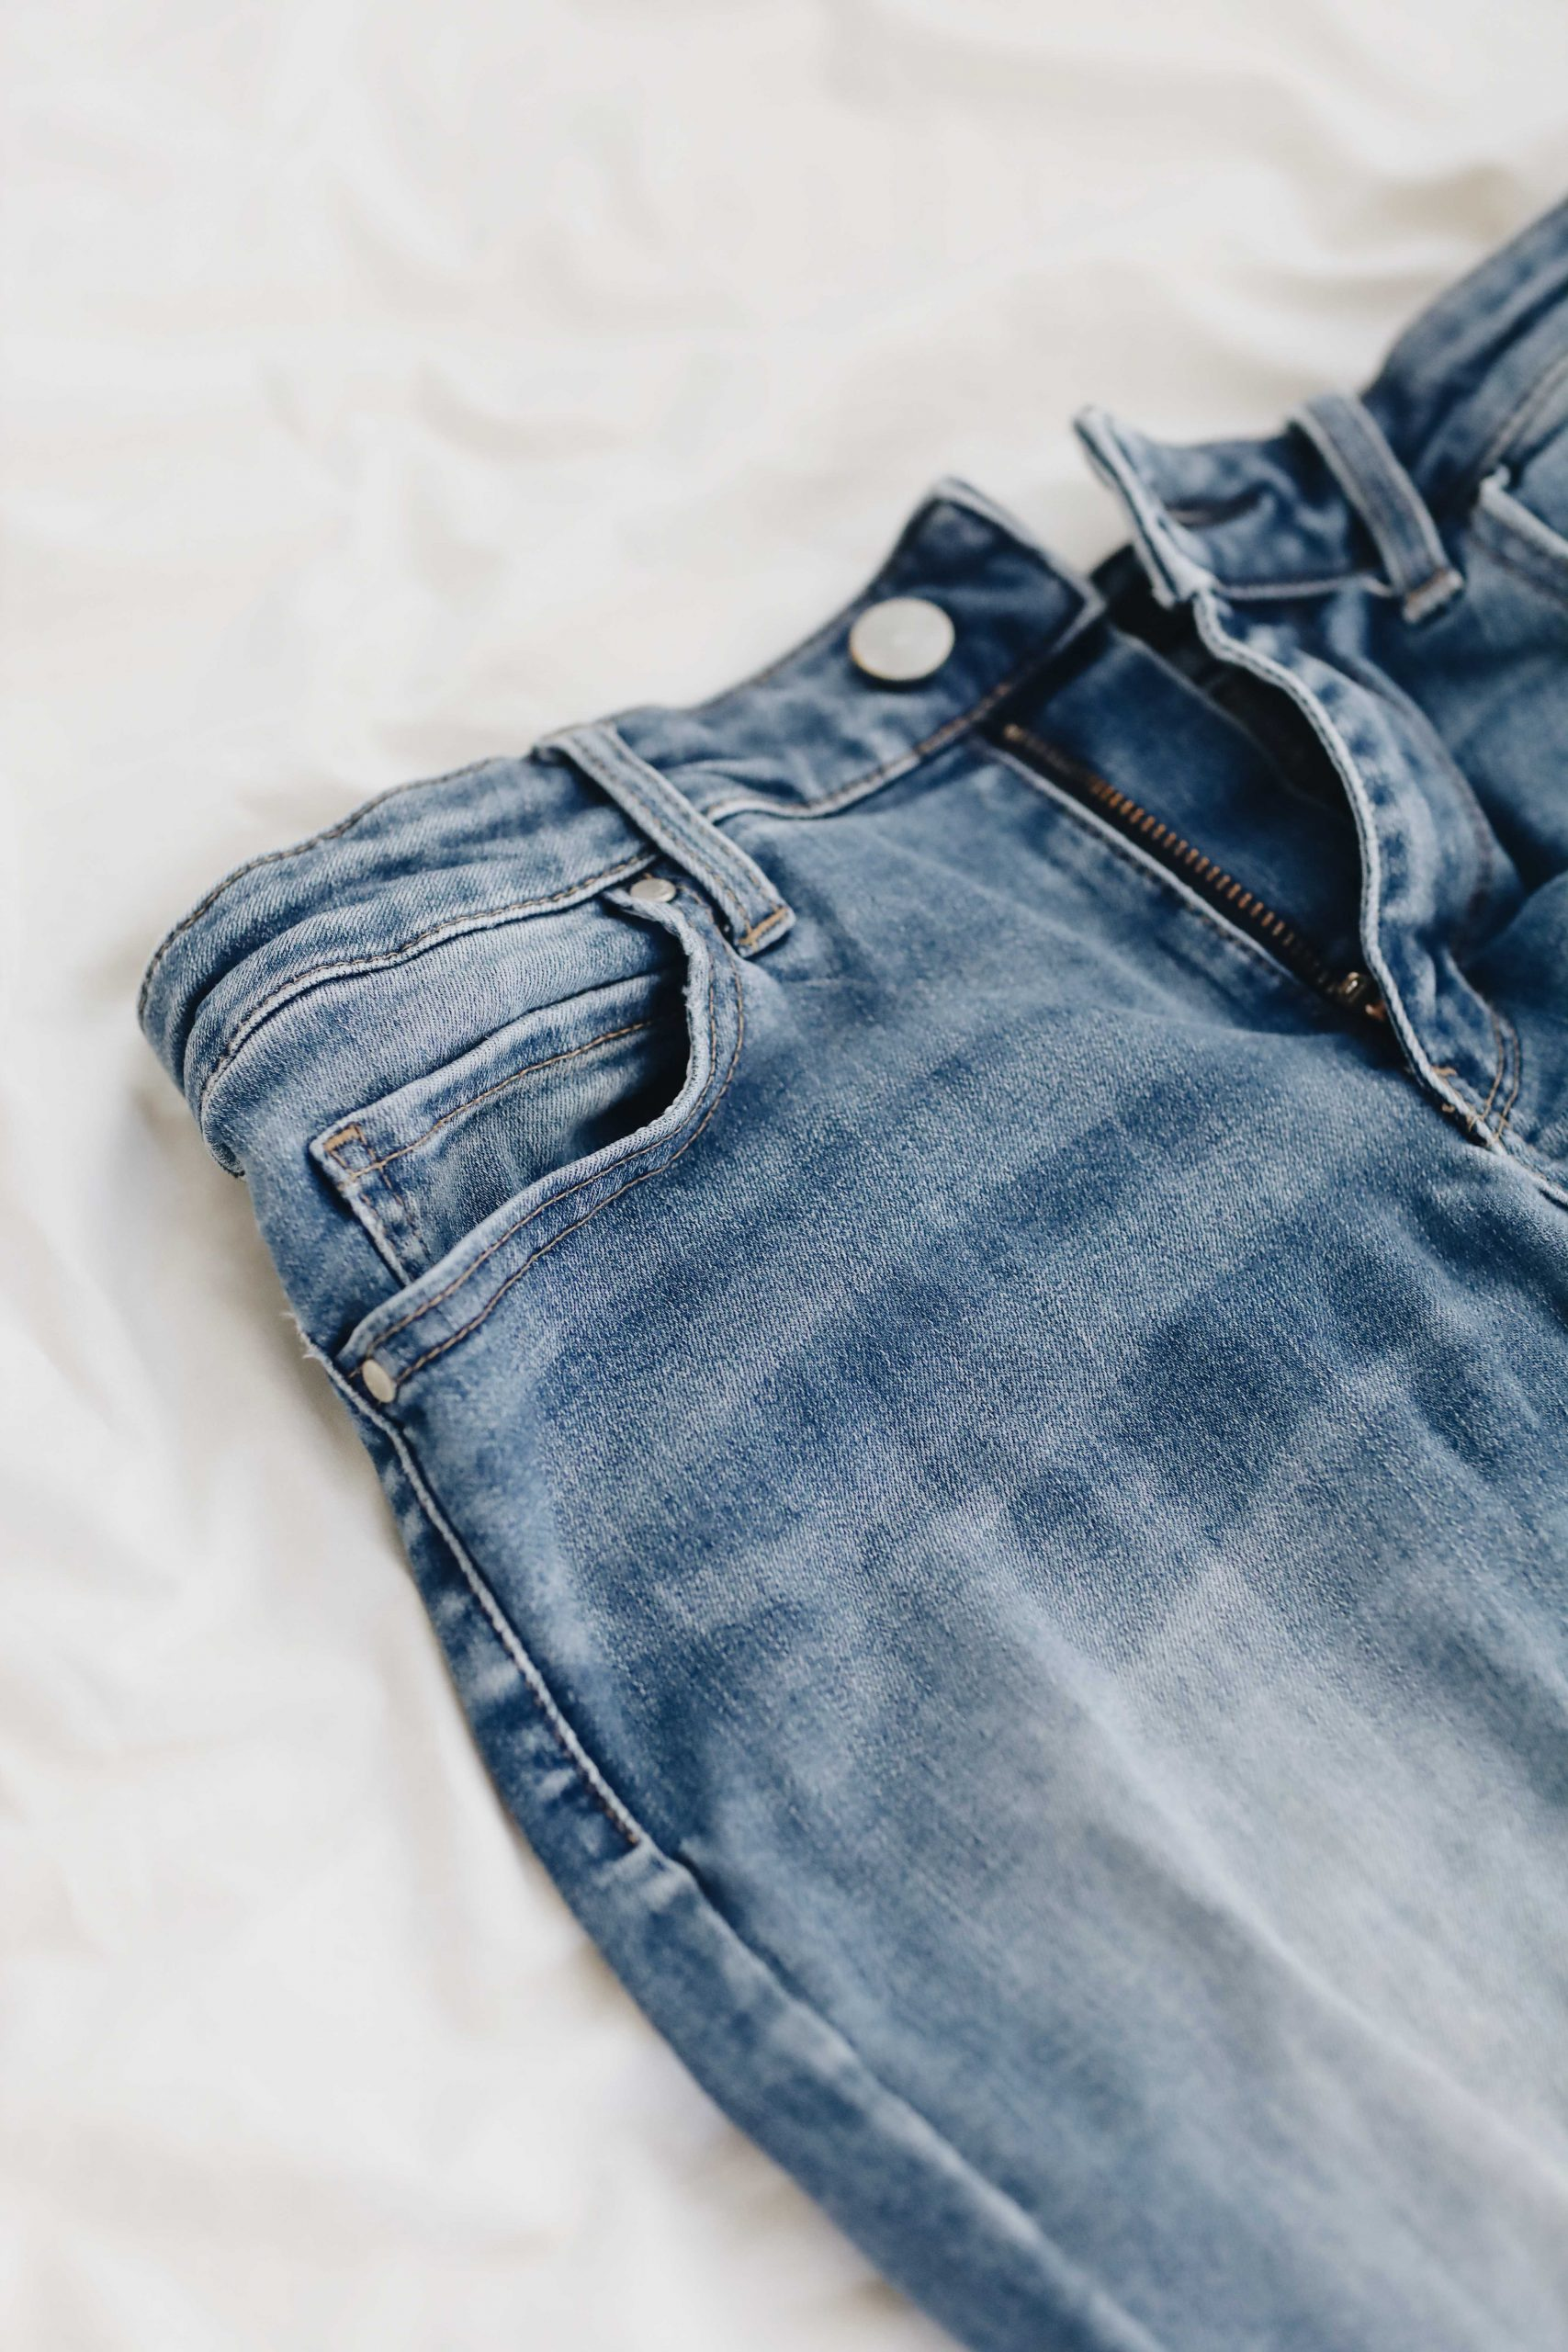 This Is What The Small Pocket On Jeans Is *Actually* For